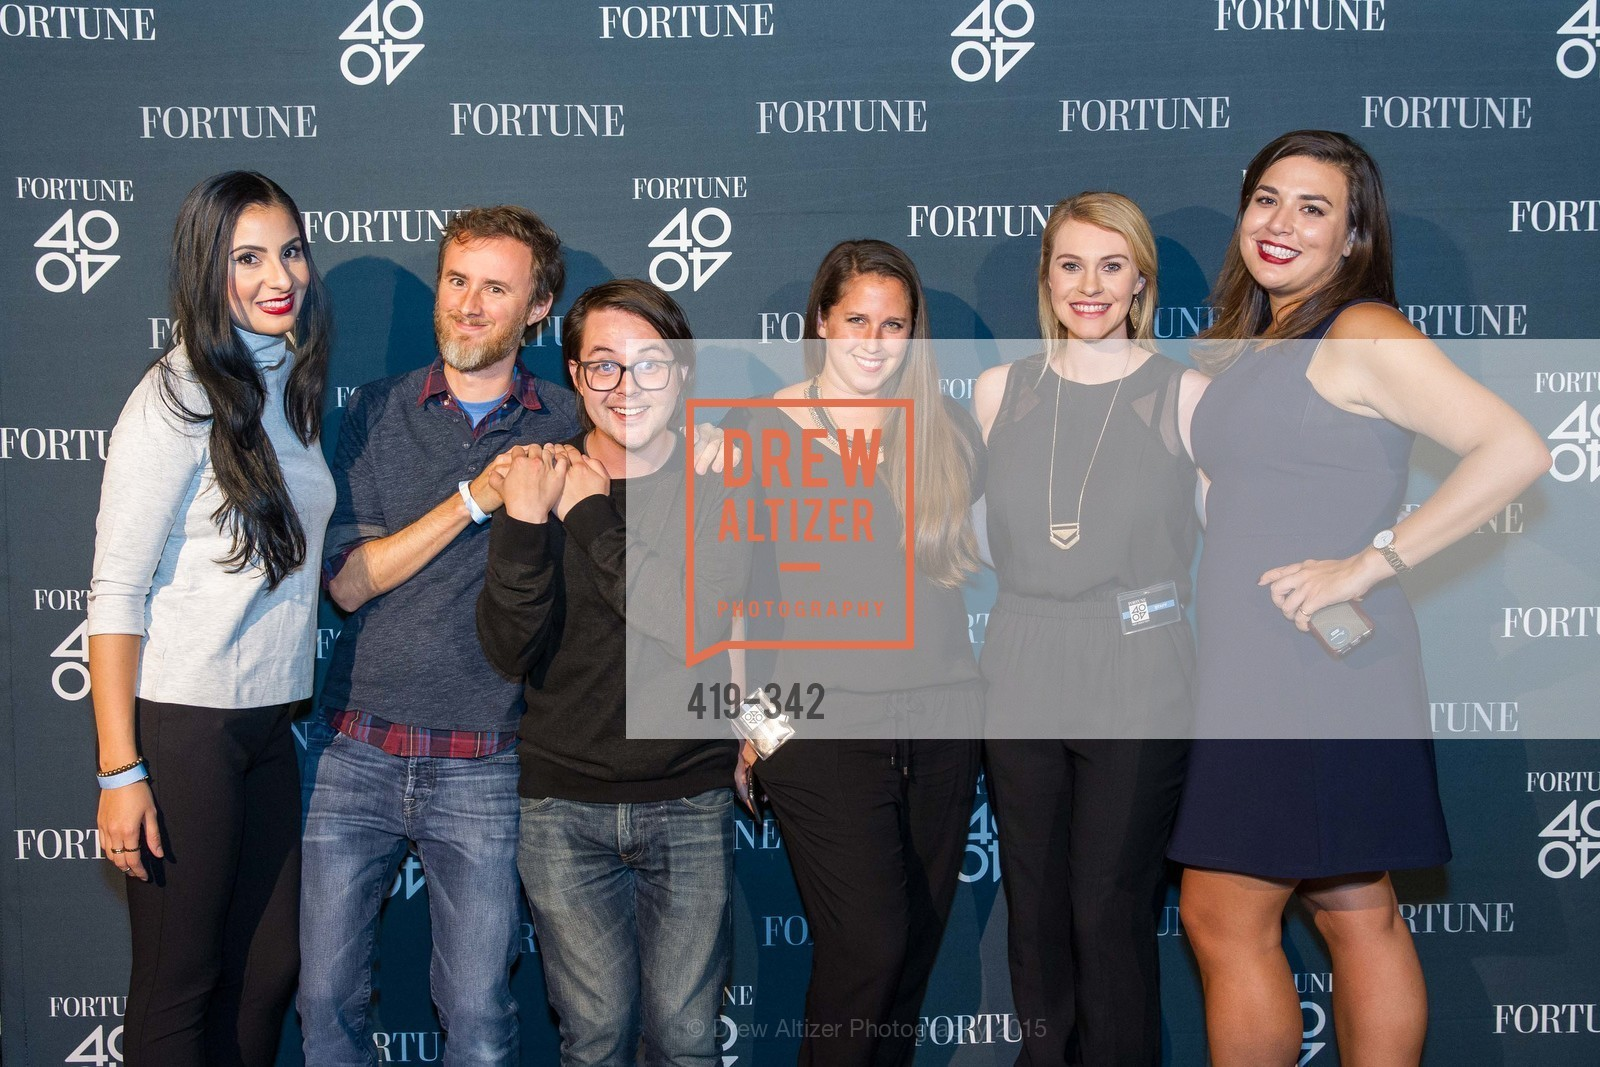 Daniela Quintanilla, Corey Johnson, Pat Nakajima, Alaine Newland, Katelyn Bryant, Kate Guarente, Fortune's 40 Under 40 Party, GitHub HQ. 88 Colin P Kelly Jr St, October 7th, 2015,Drew Altizer, Drew Altizer Photography, full-service agency, private events, San Francisco photographer, photographer california